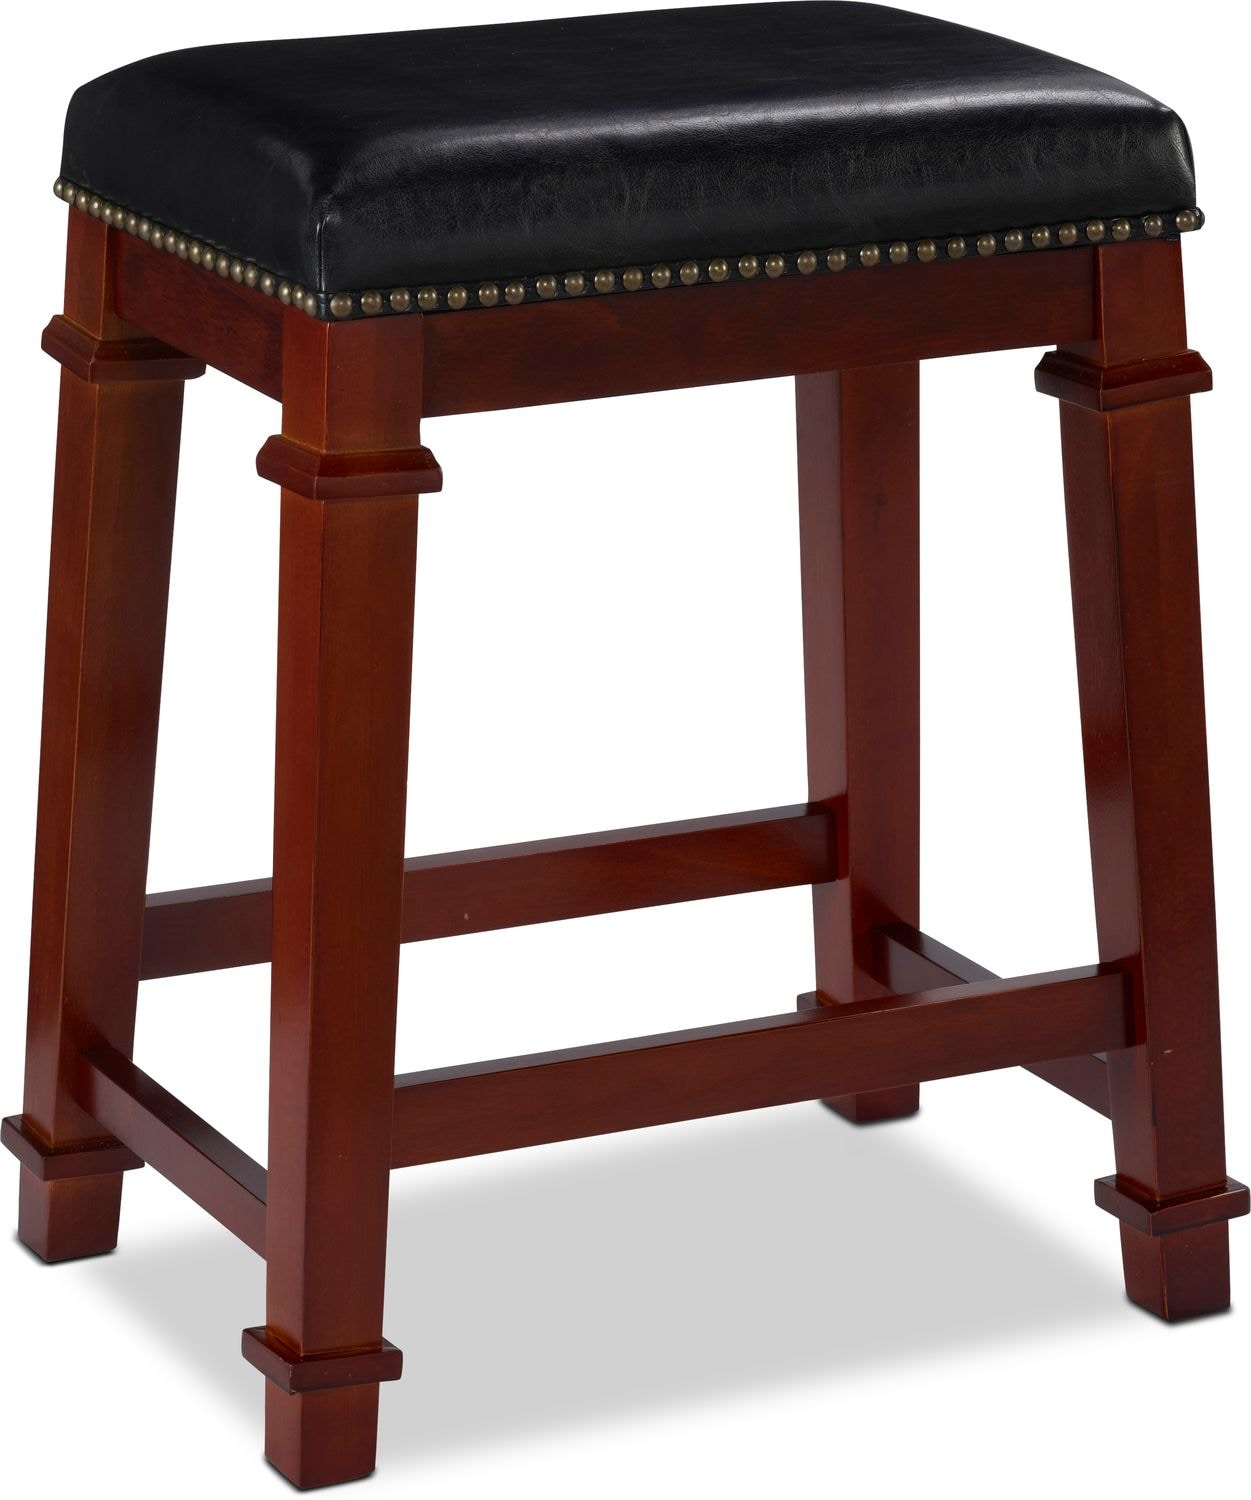 Dining Room Furniture - Caleb Counter-Height Stool